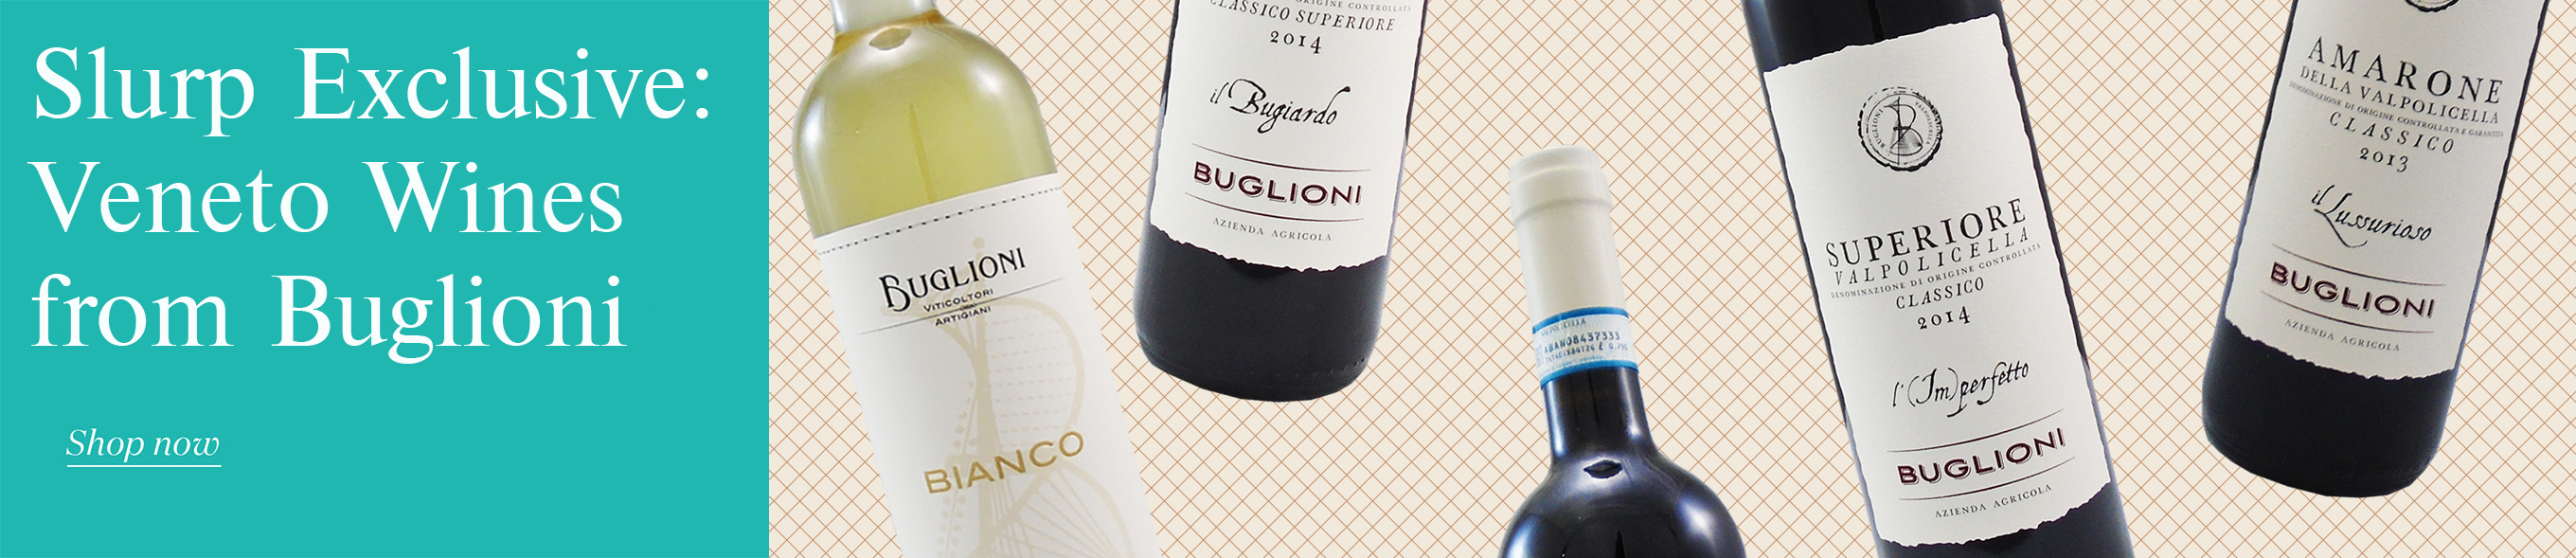 Slurp Exclusive: Veneto Wines from Buglioni